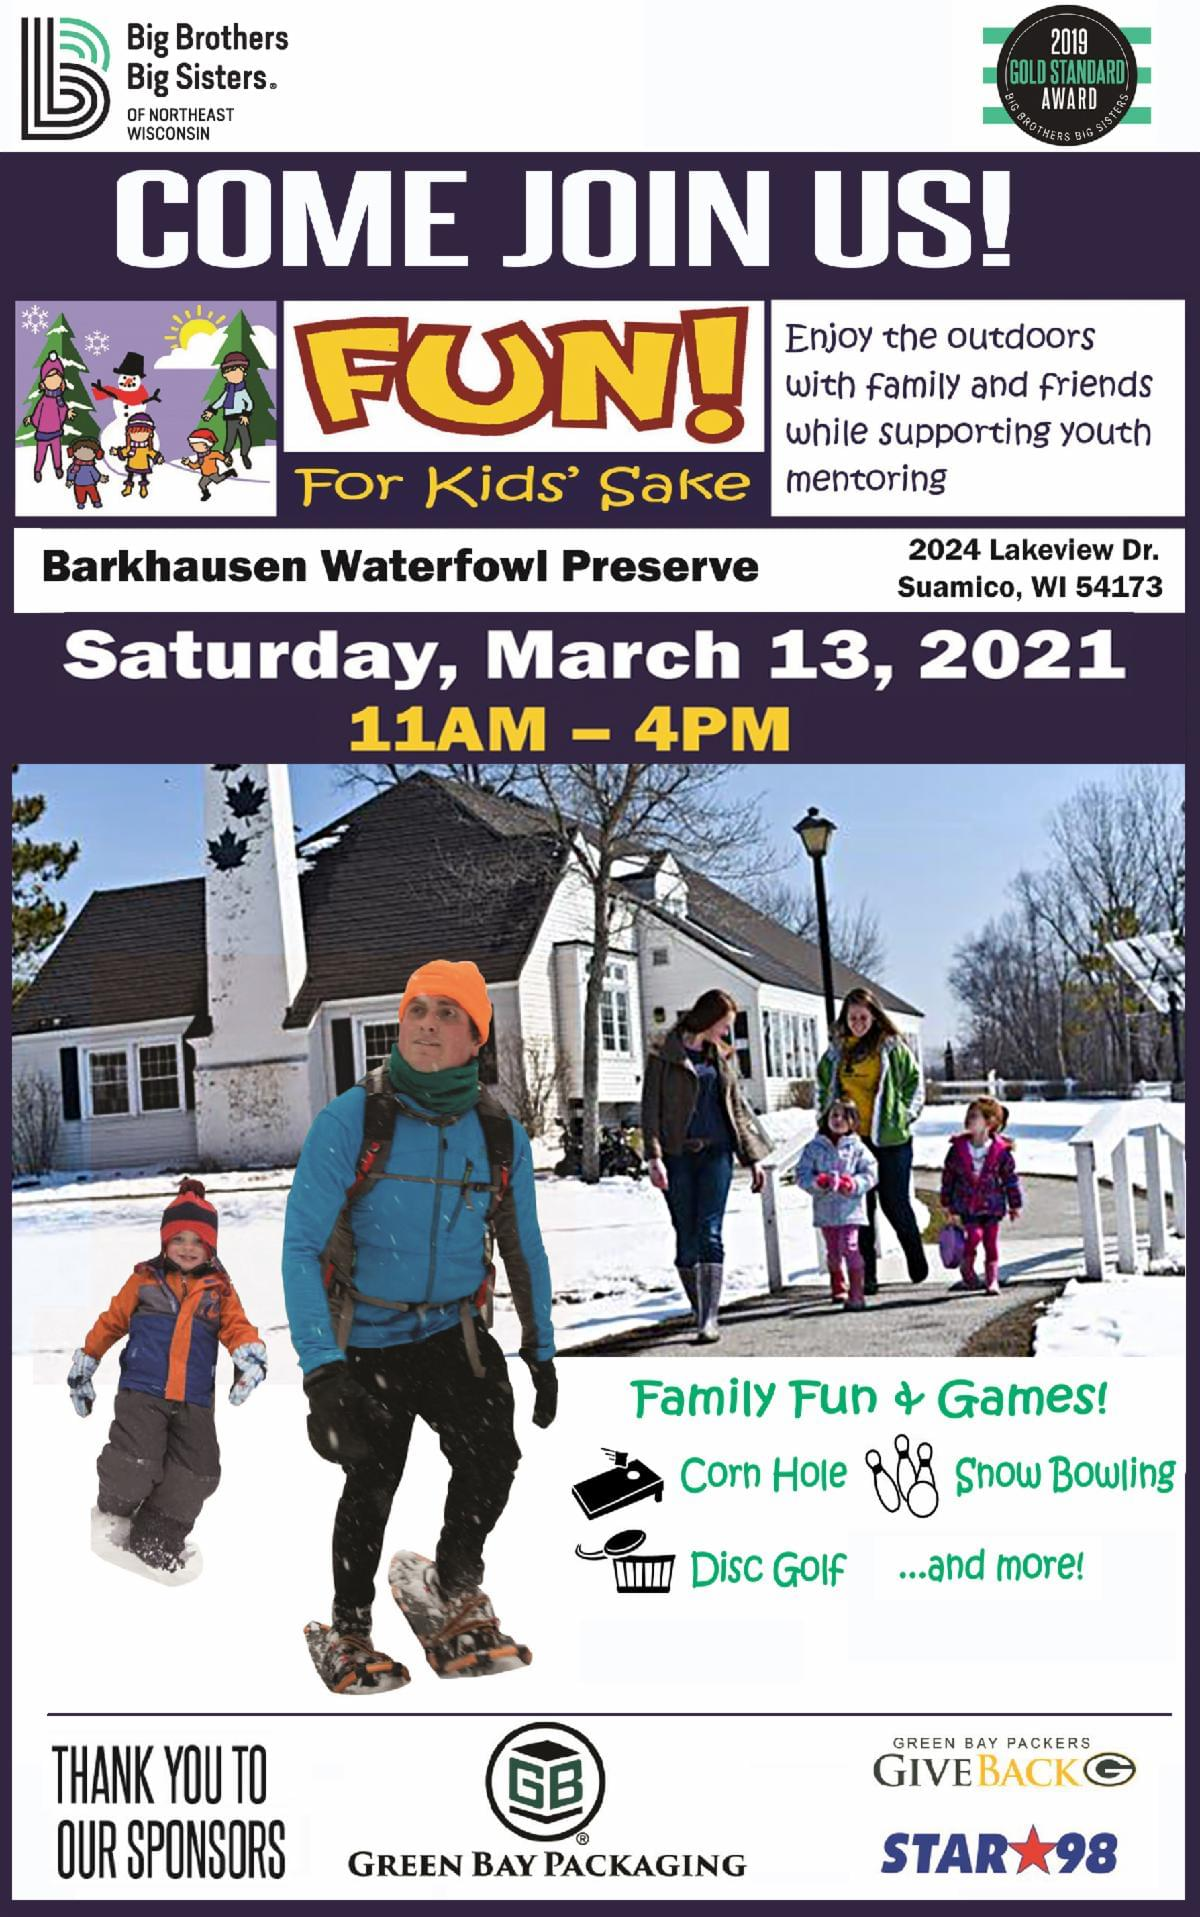 Join us for Fun for Kids Sake Event at Barkhausen Waterfowl Preserve